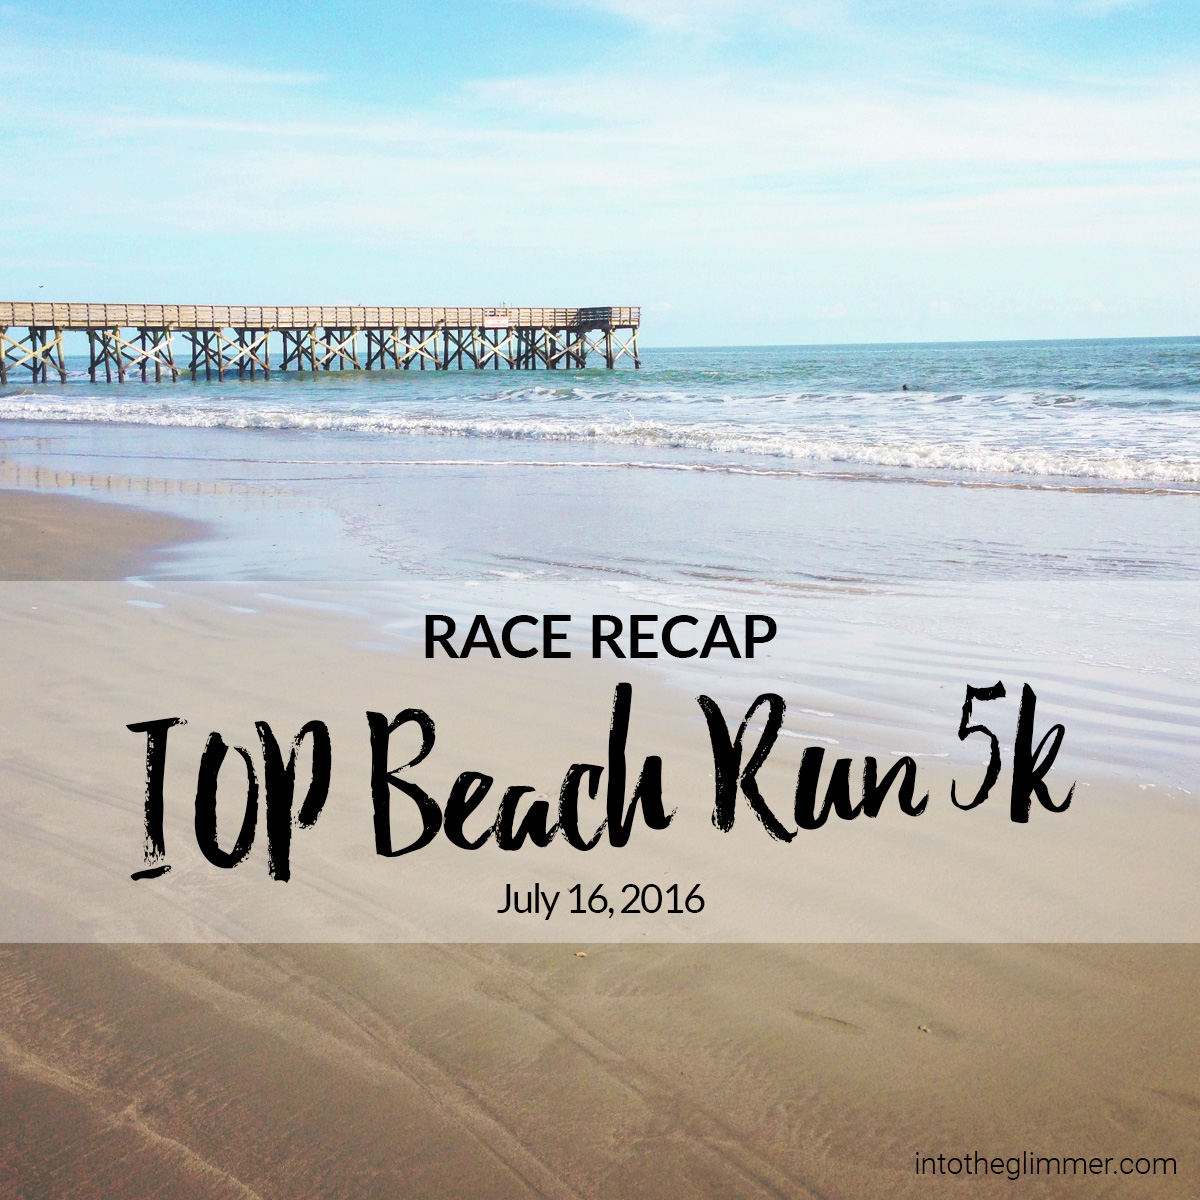 IOP Beach Run 5k Race Recap by Into the Glimmer